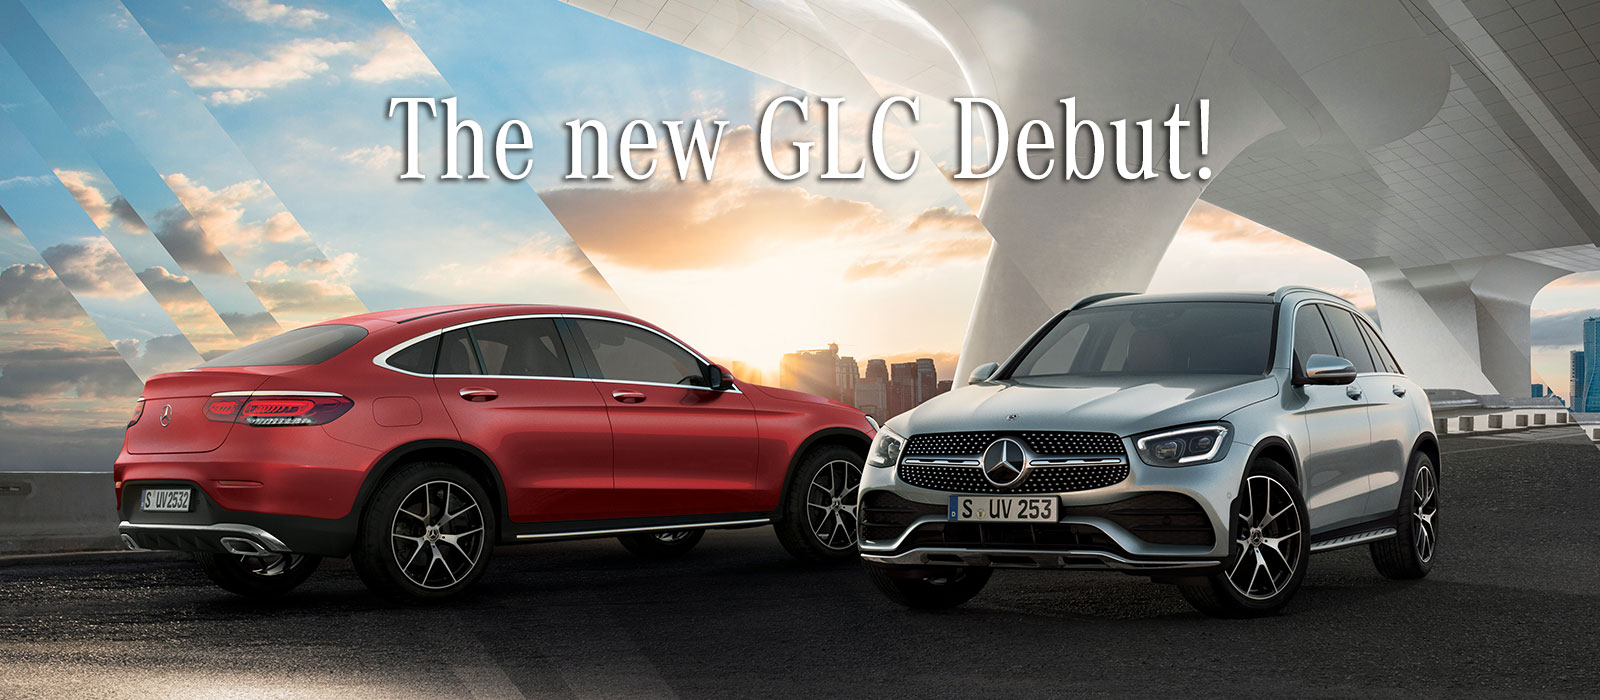 The new GLC Debut!